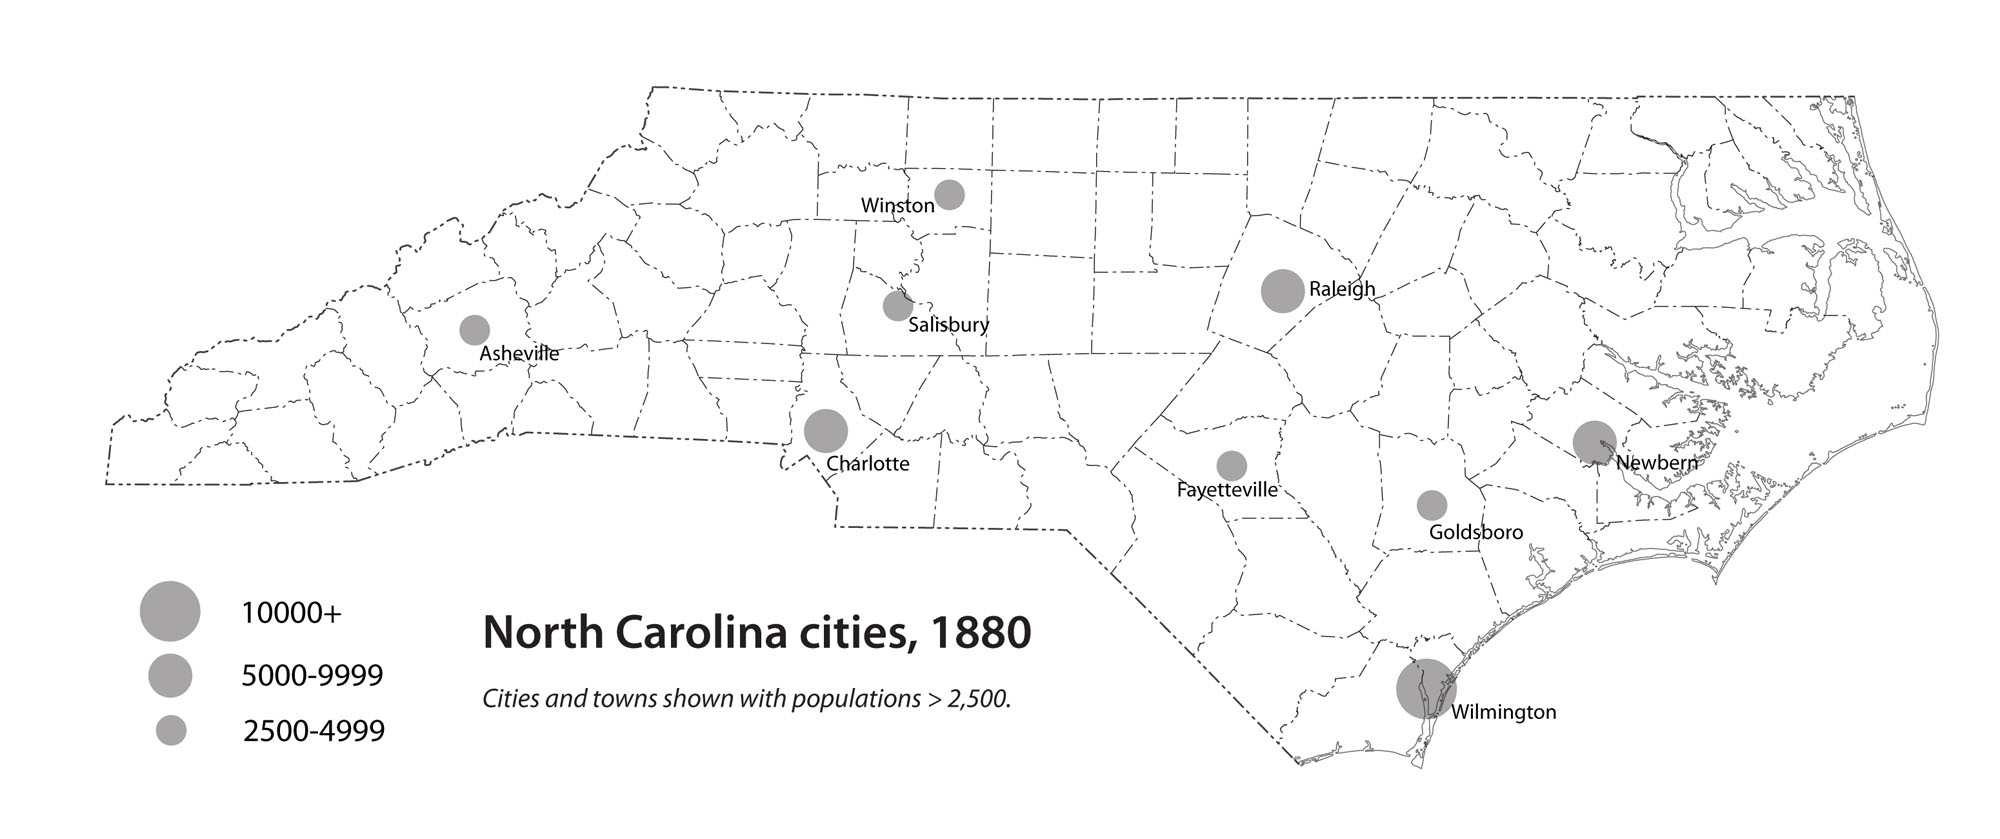 North Carolina cities, 1880